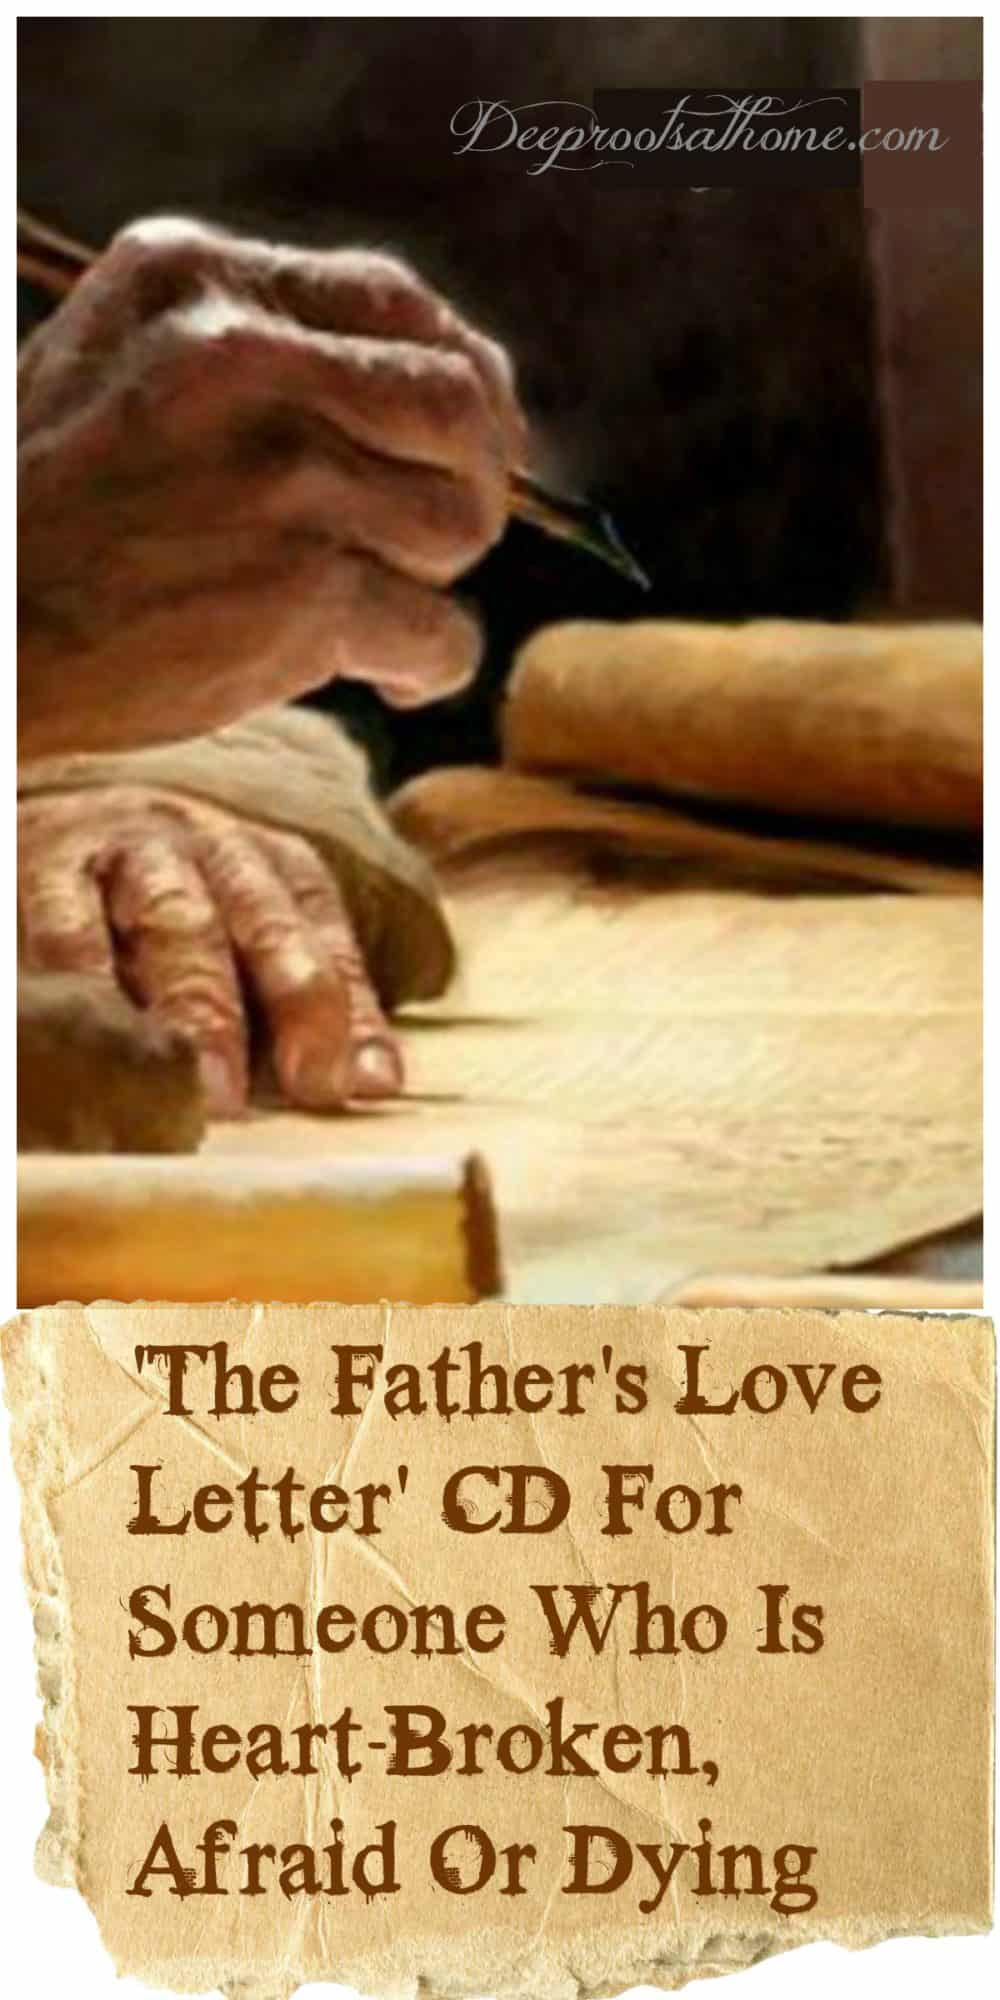 The Father's Love Letter CD for One Who is Heart-Broken, Afraid or Dying. An old man writing a love letter.